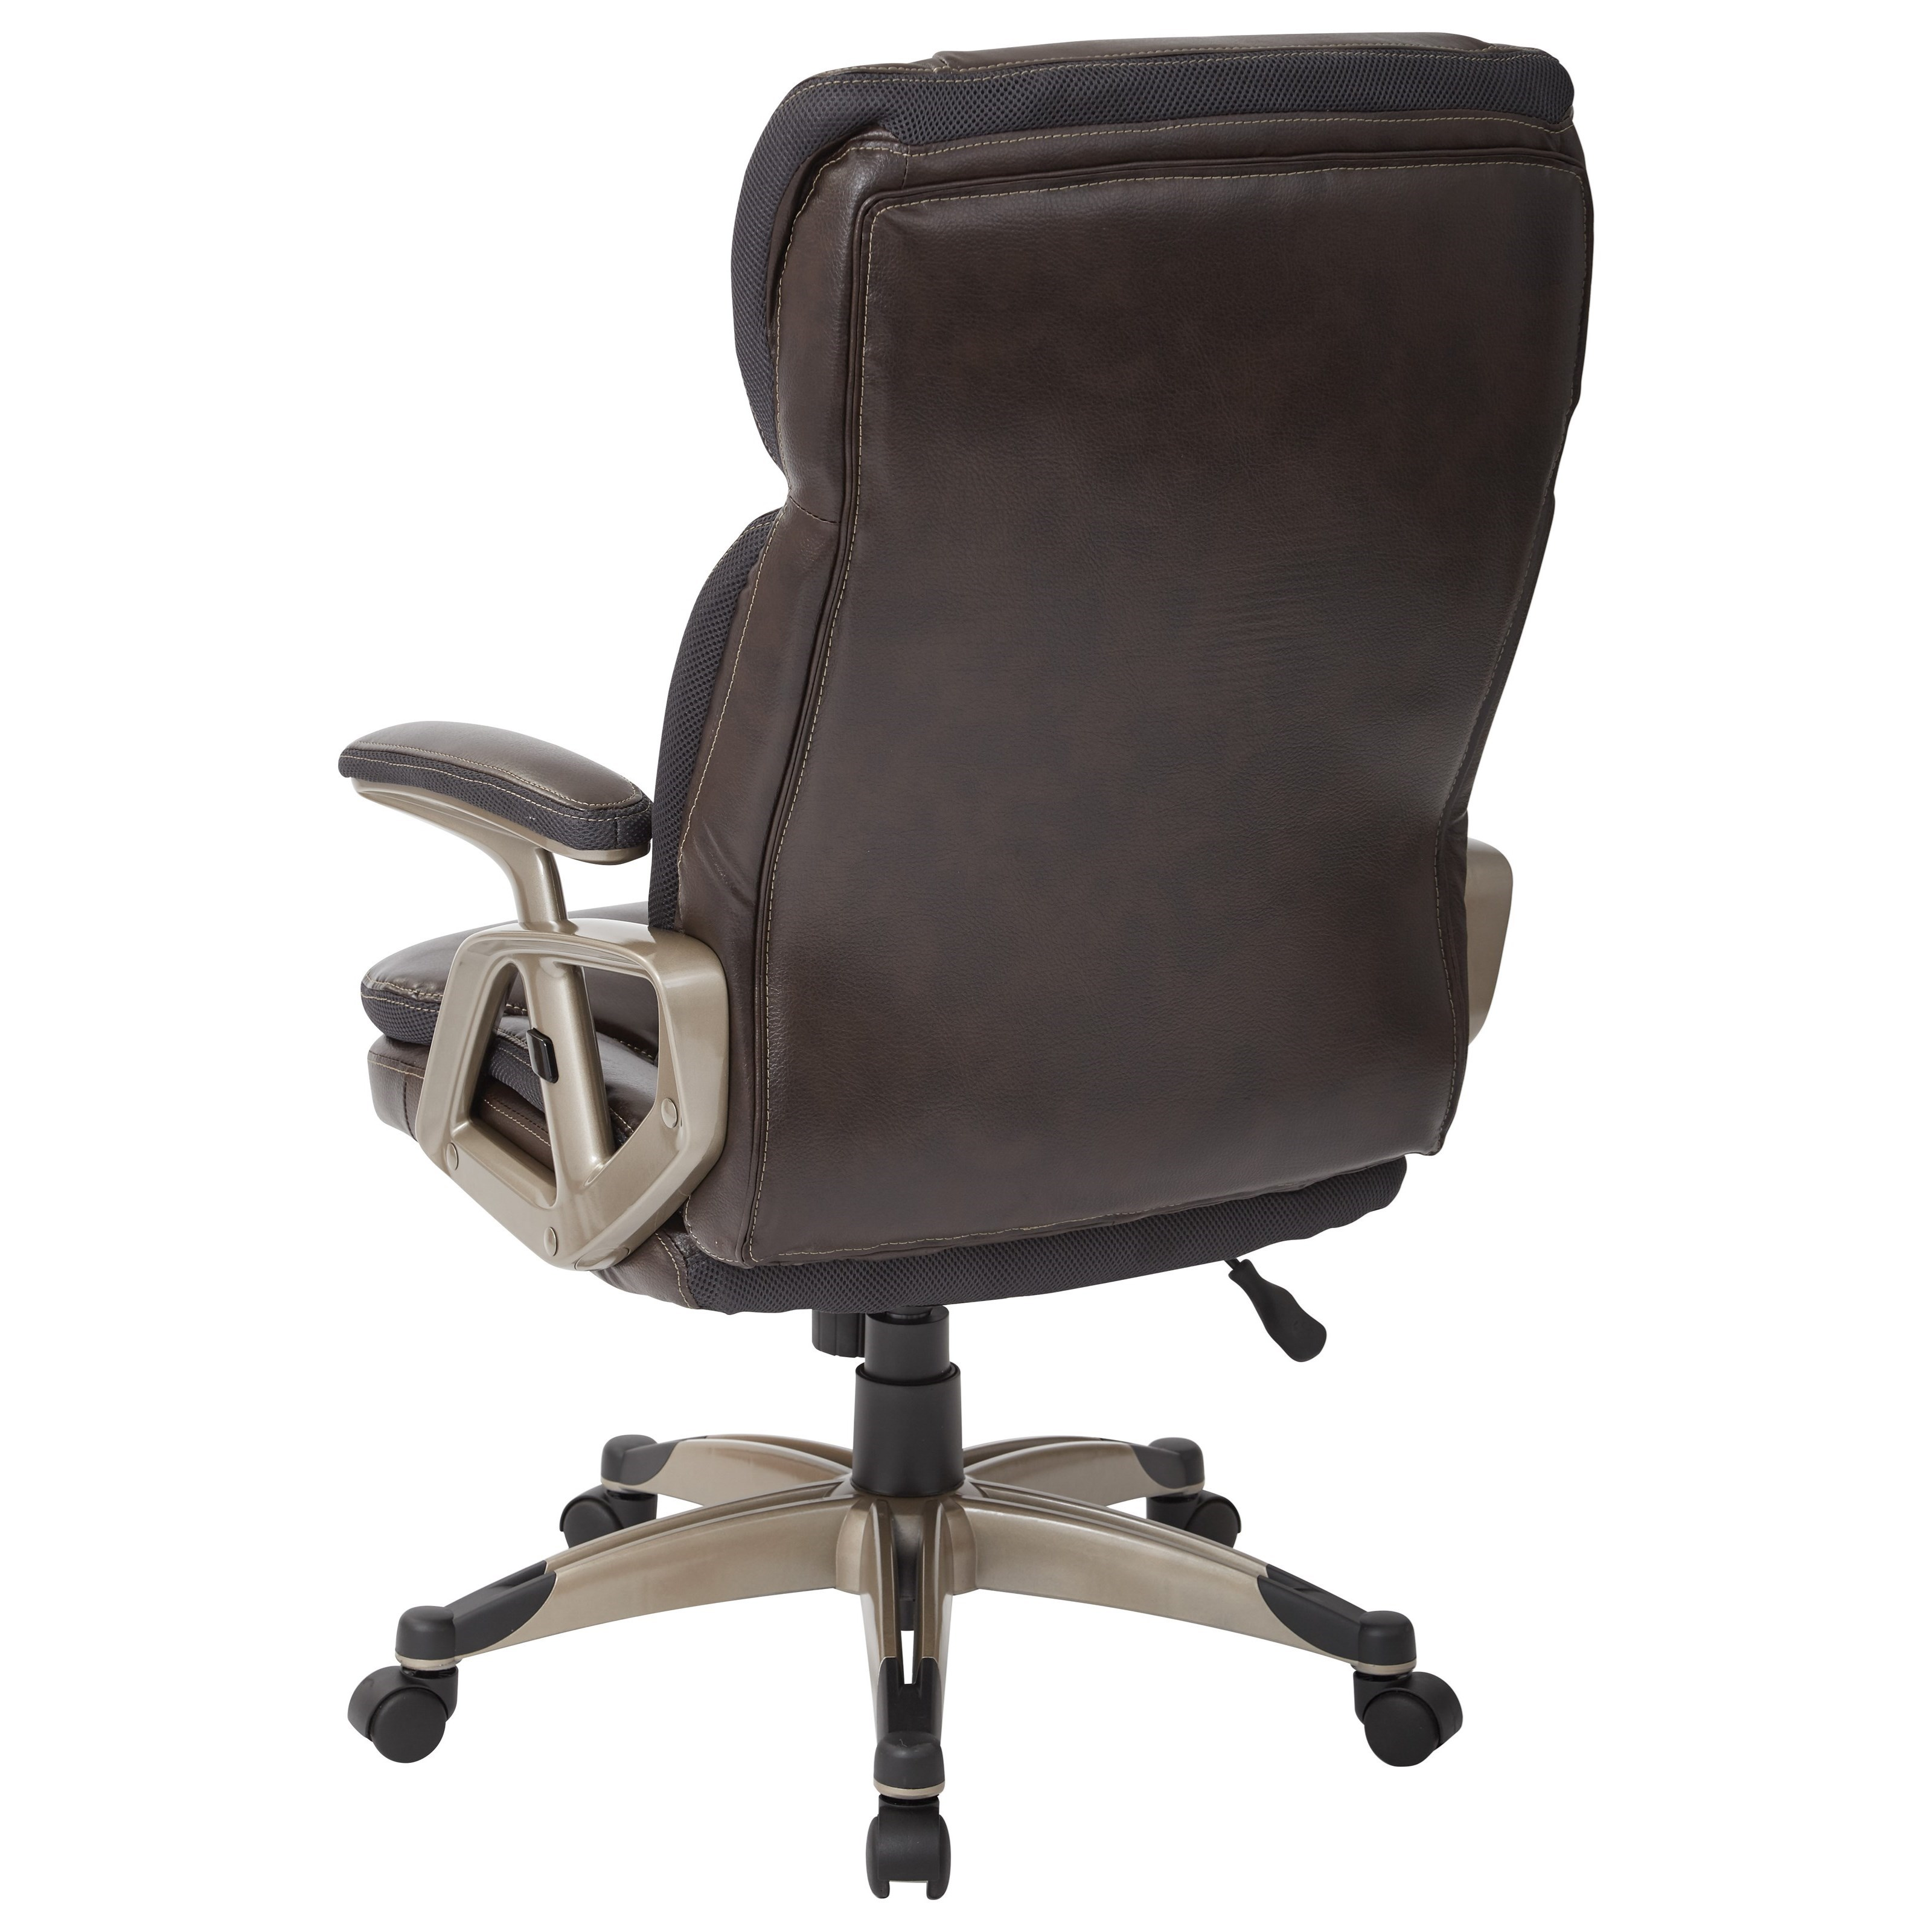 Office Star Office Chairs ECH70751-EC31 Executive Bonded